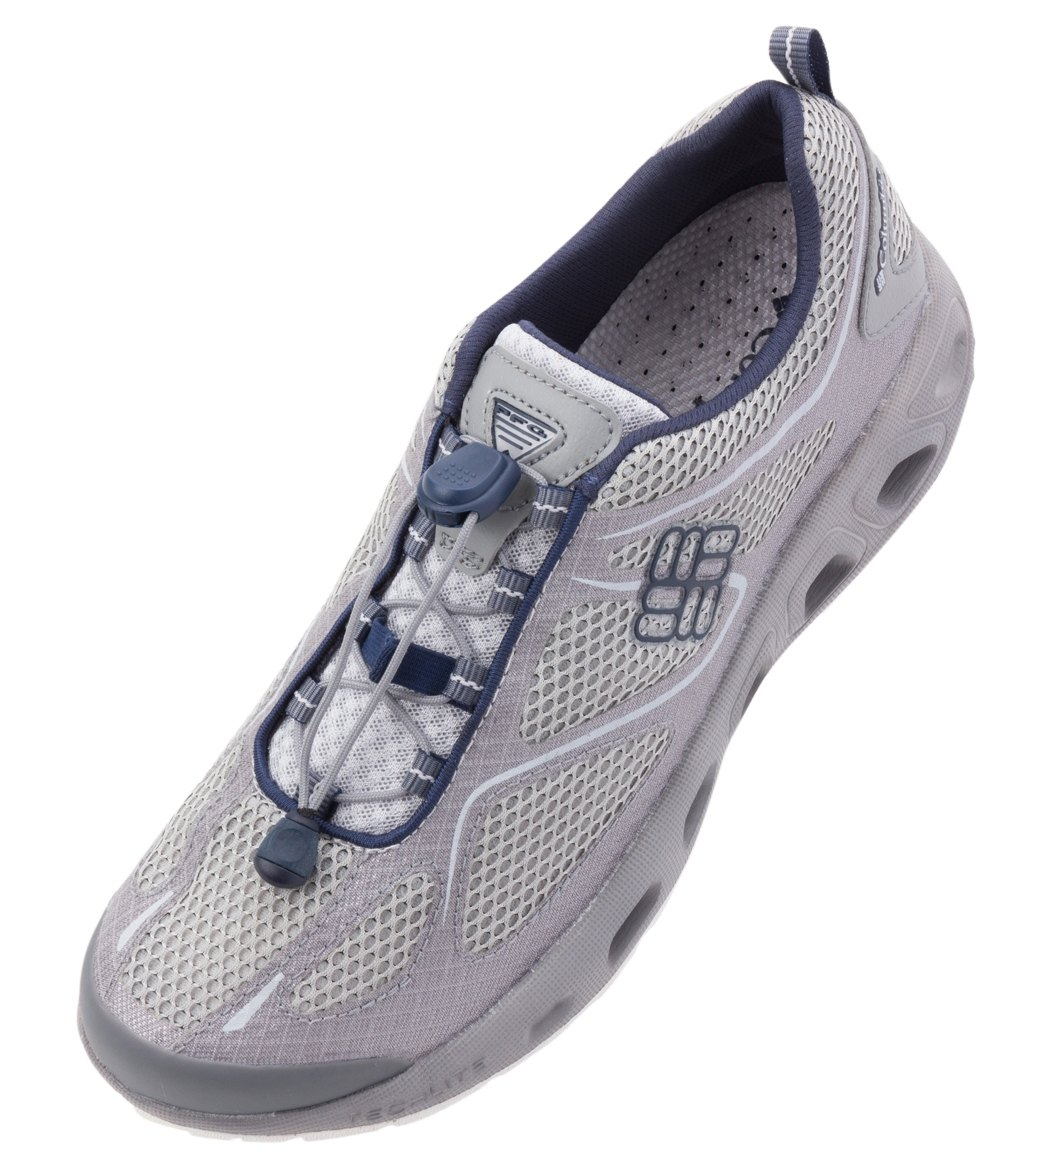 Columbia Men's Powervent PFG Water Shoes at SwimOutlet.com - Free ...